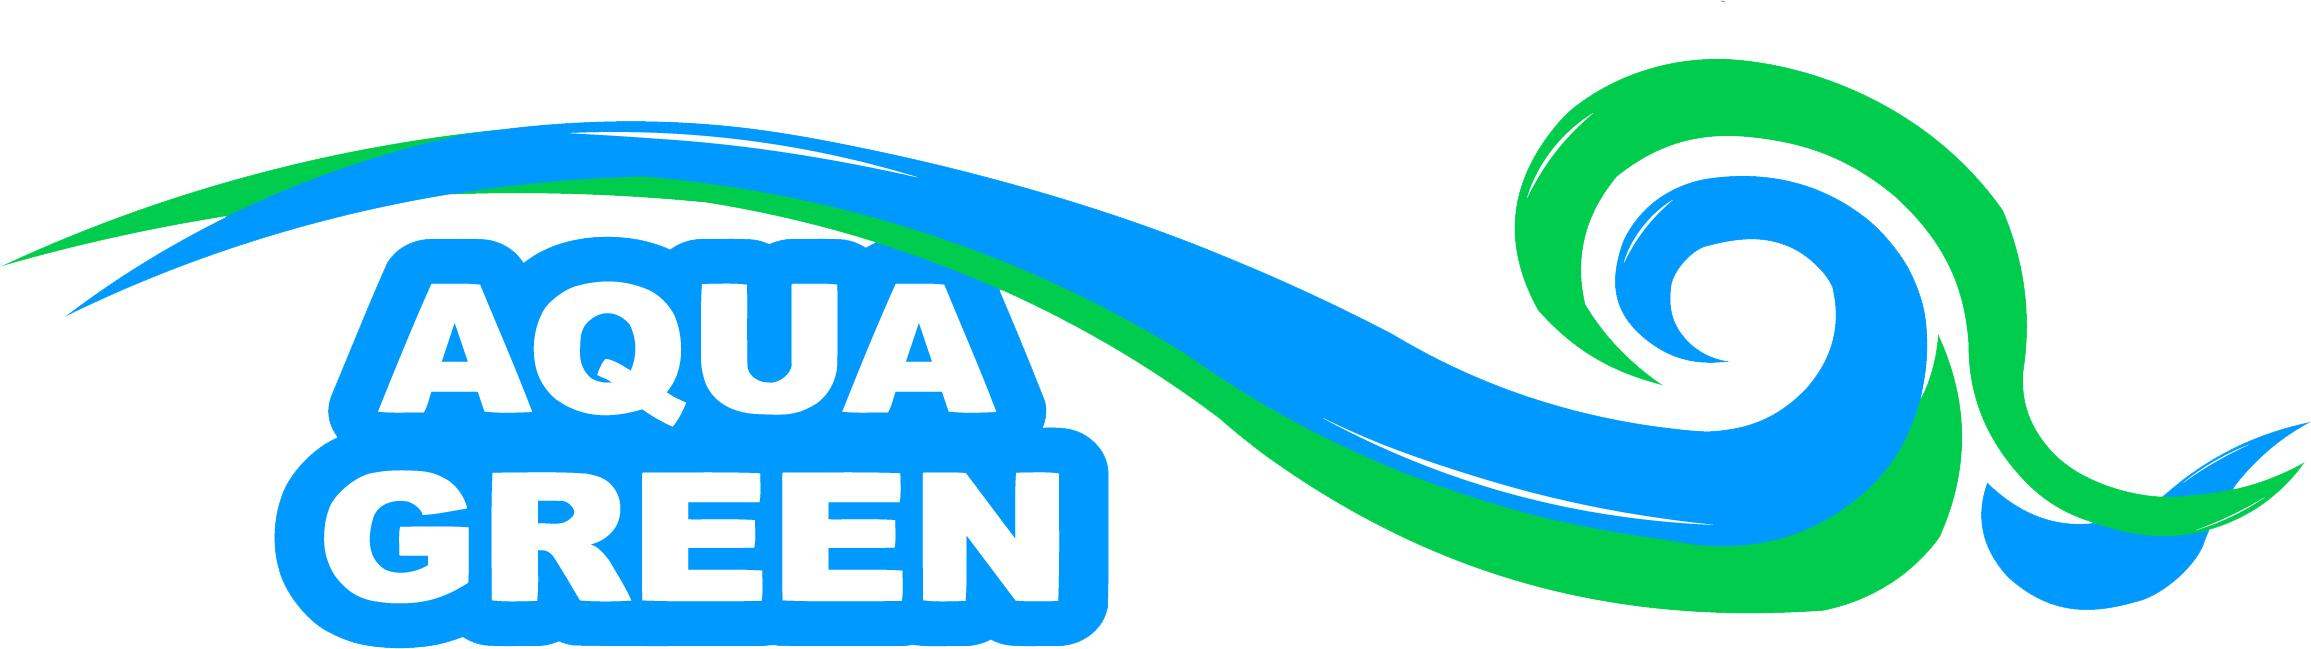 aquagreen logo_1_10